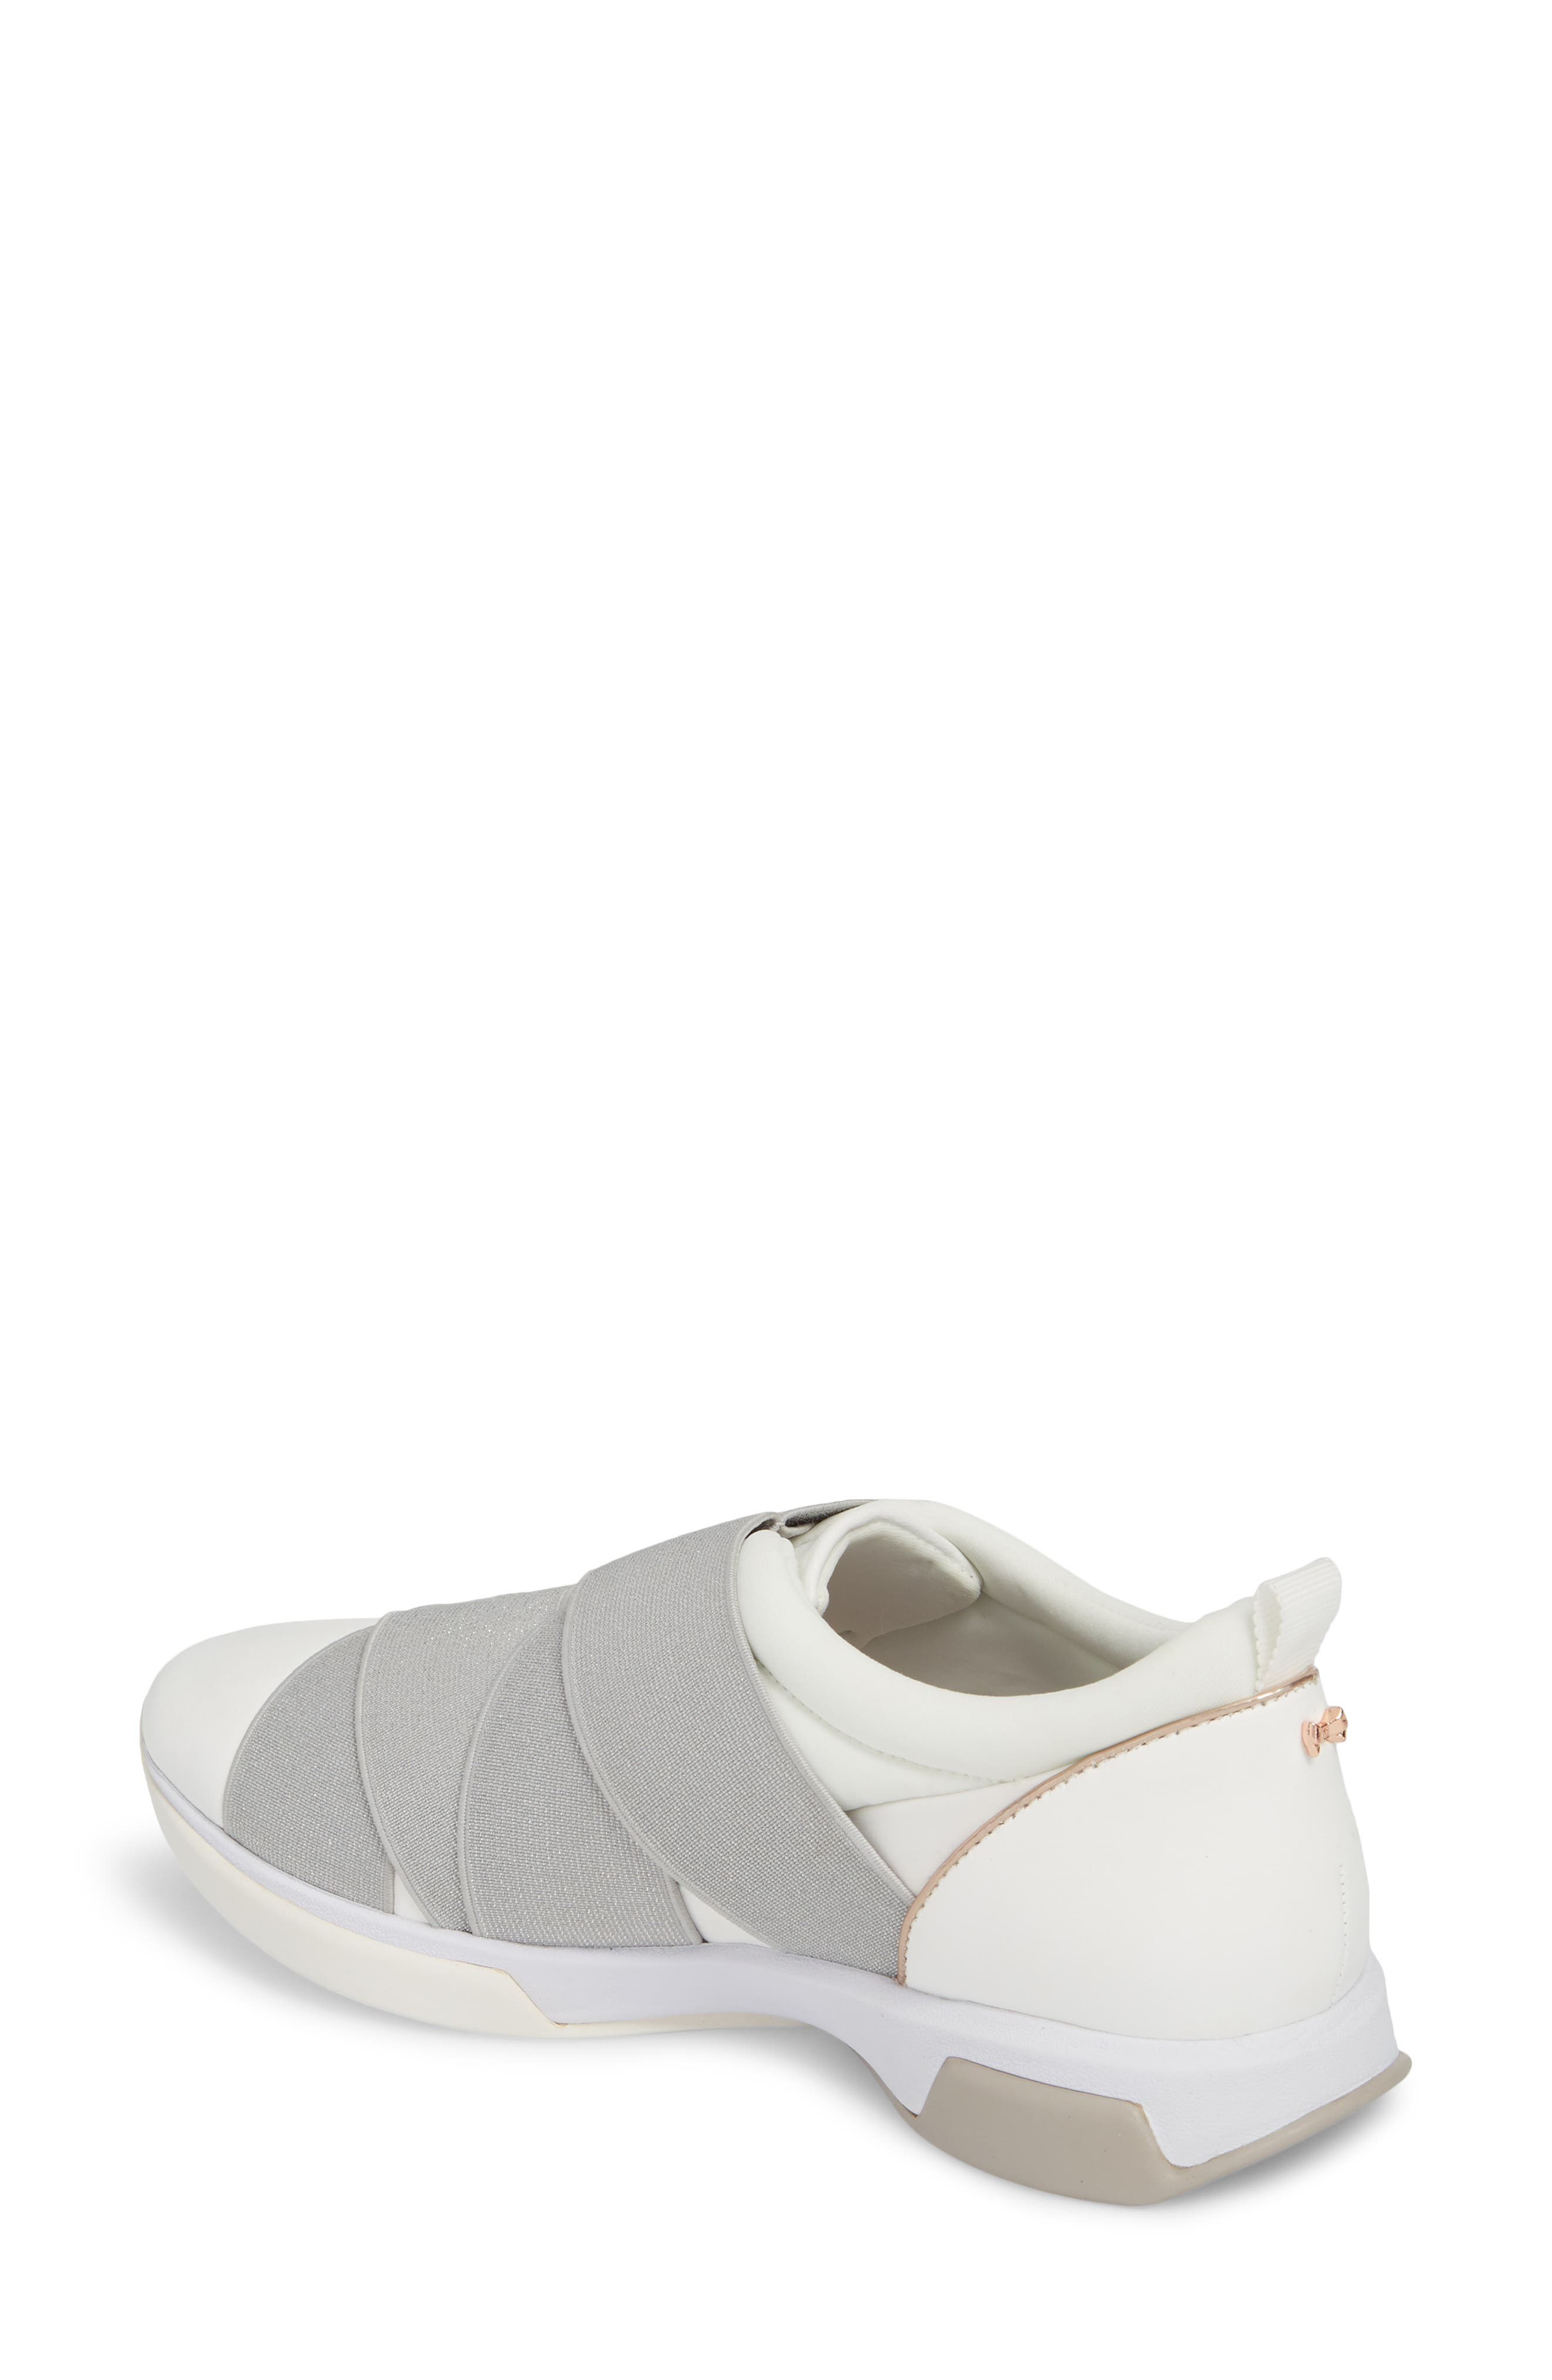 Queane Sneaker,                             Alternate thumbnail 2, color,                             White/ Silver Leather